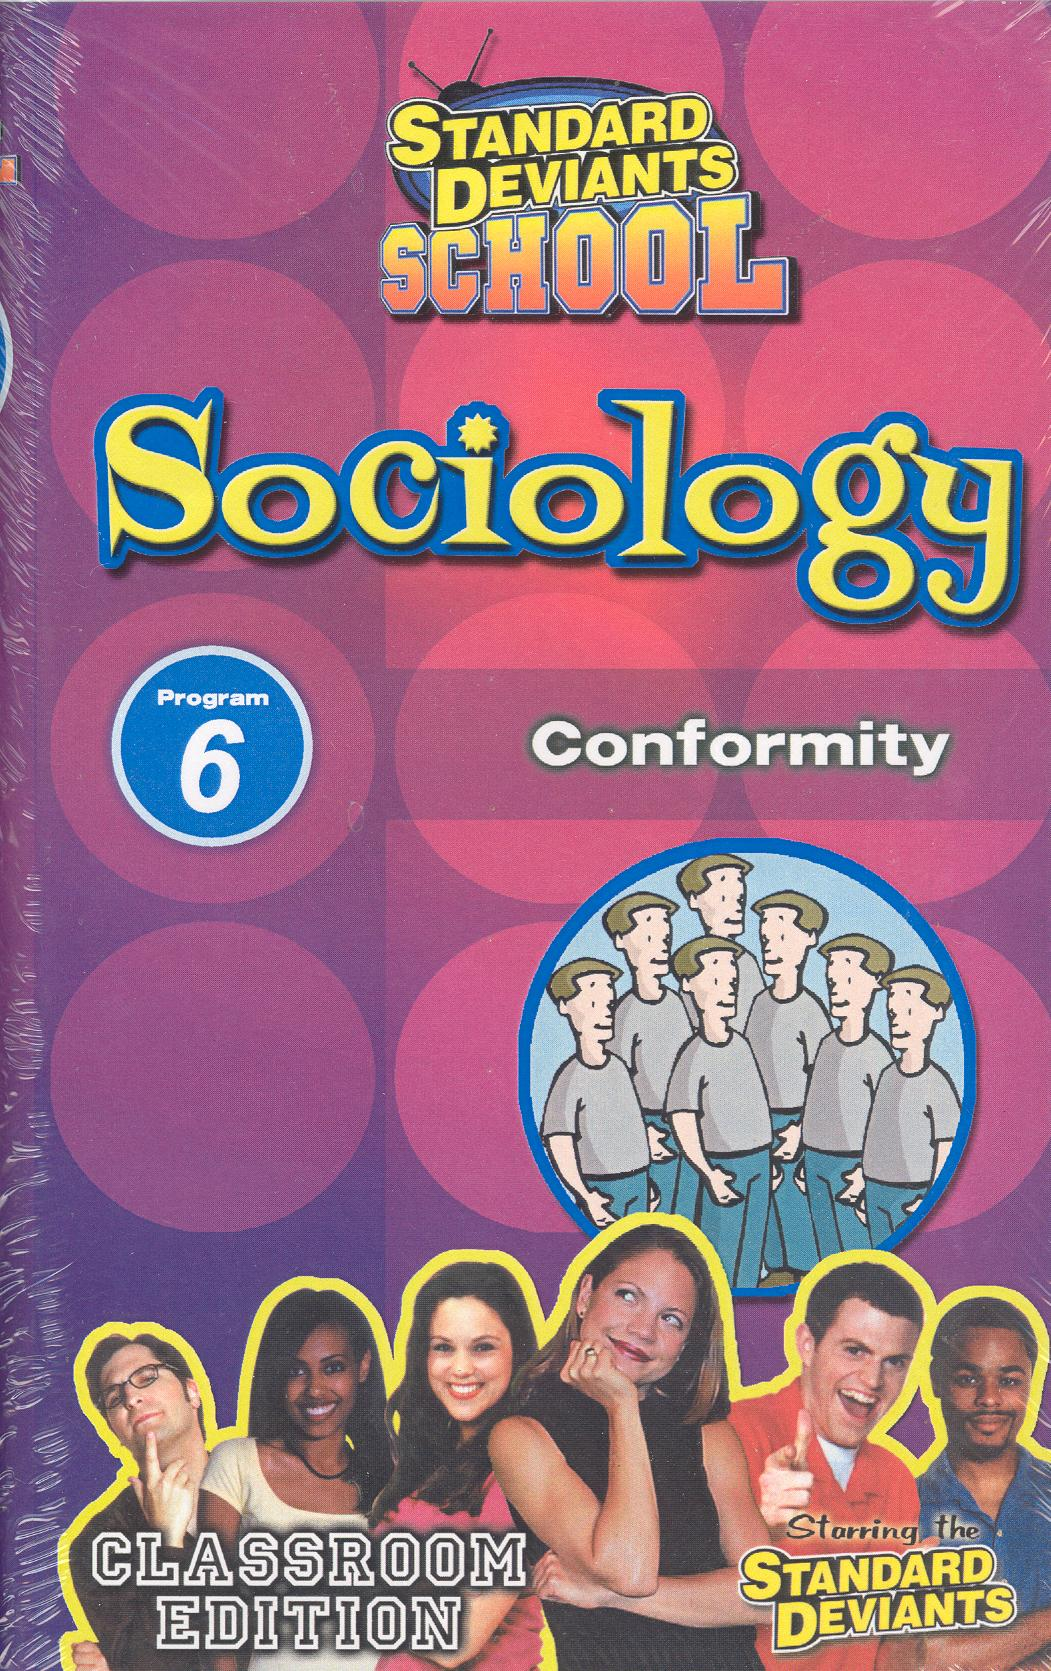 Standard Deviants School: Sociology, Program 6 - Conformity